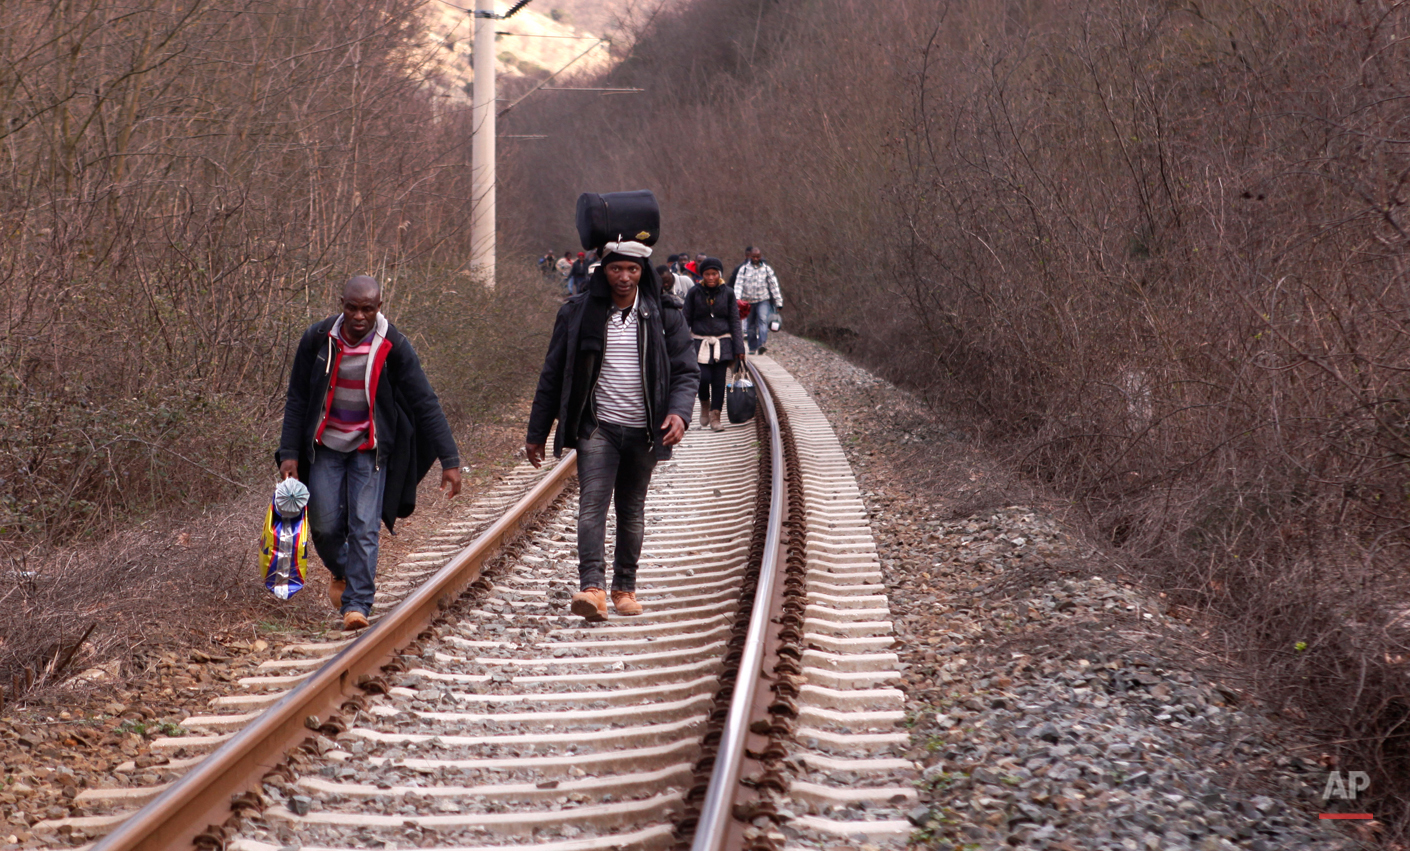 In this Saturday, Feb. 28, 2015 photo West African migrants walk on train tracks on their way towards the border with Macedonia near the town of Evzonoi, Greece.  The tide of hopeful migrants pours through the vulnerable 'back-door' countries in the hope of entering the 28-nation European Union, and although most people don't make it, the human tide continues to grow, according to Frontex, the EU agency that helps governments police the blocís leaky frontiers. (AP Photo/Dalton Bennett)